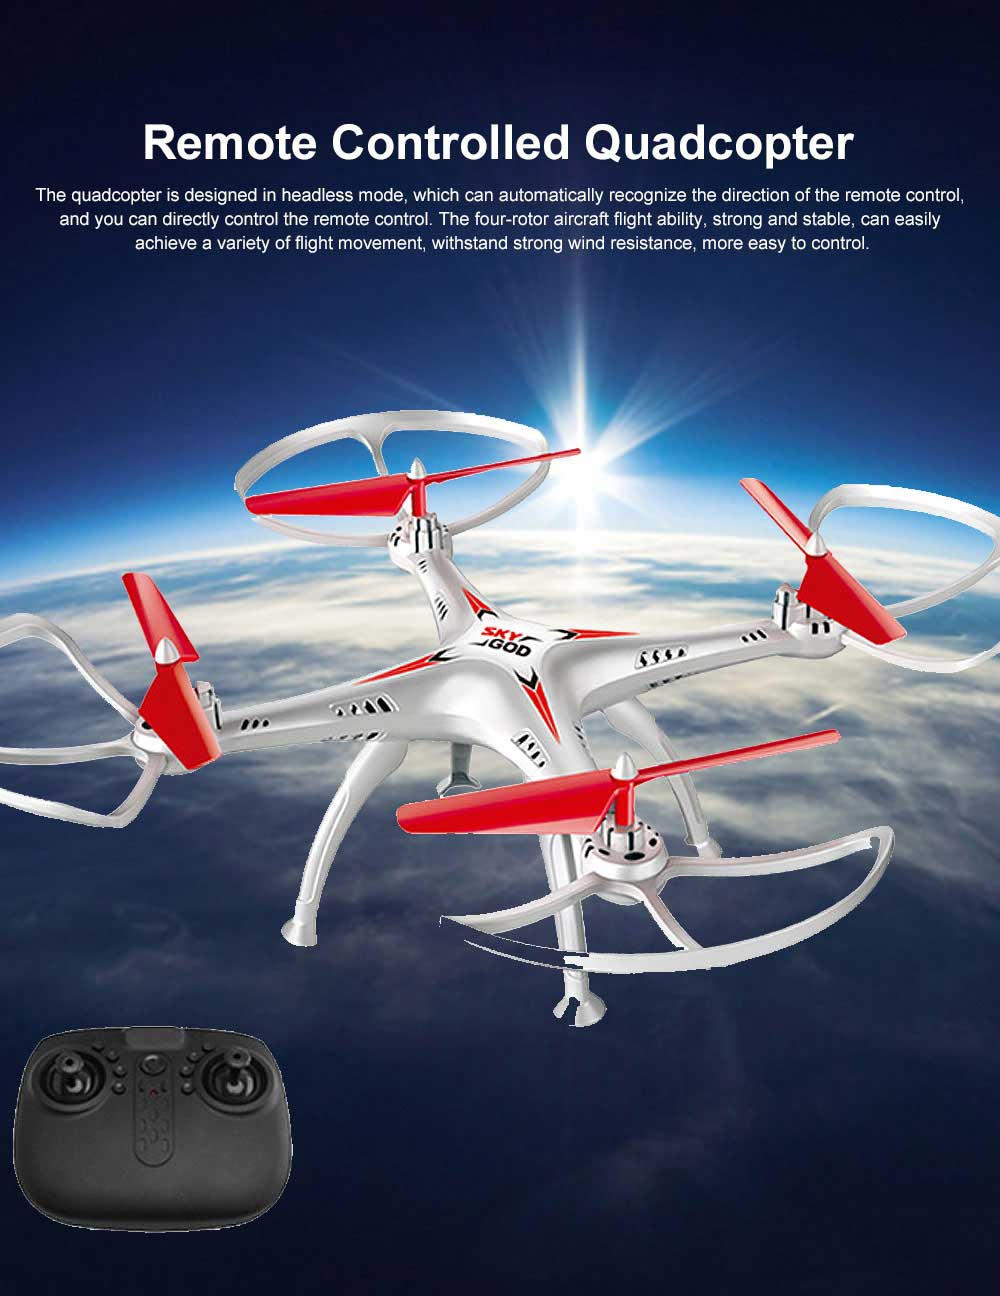 Remote Controlled Quadcopter Fall Resistant, Big Model Airplane Toys for Children, Remote Drone 0